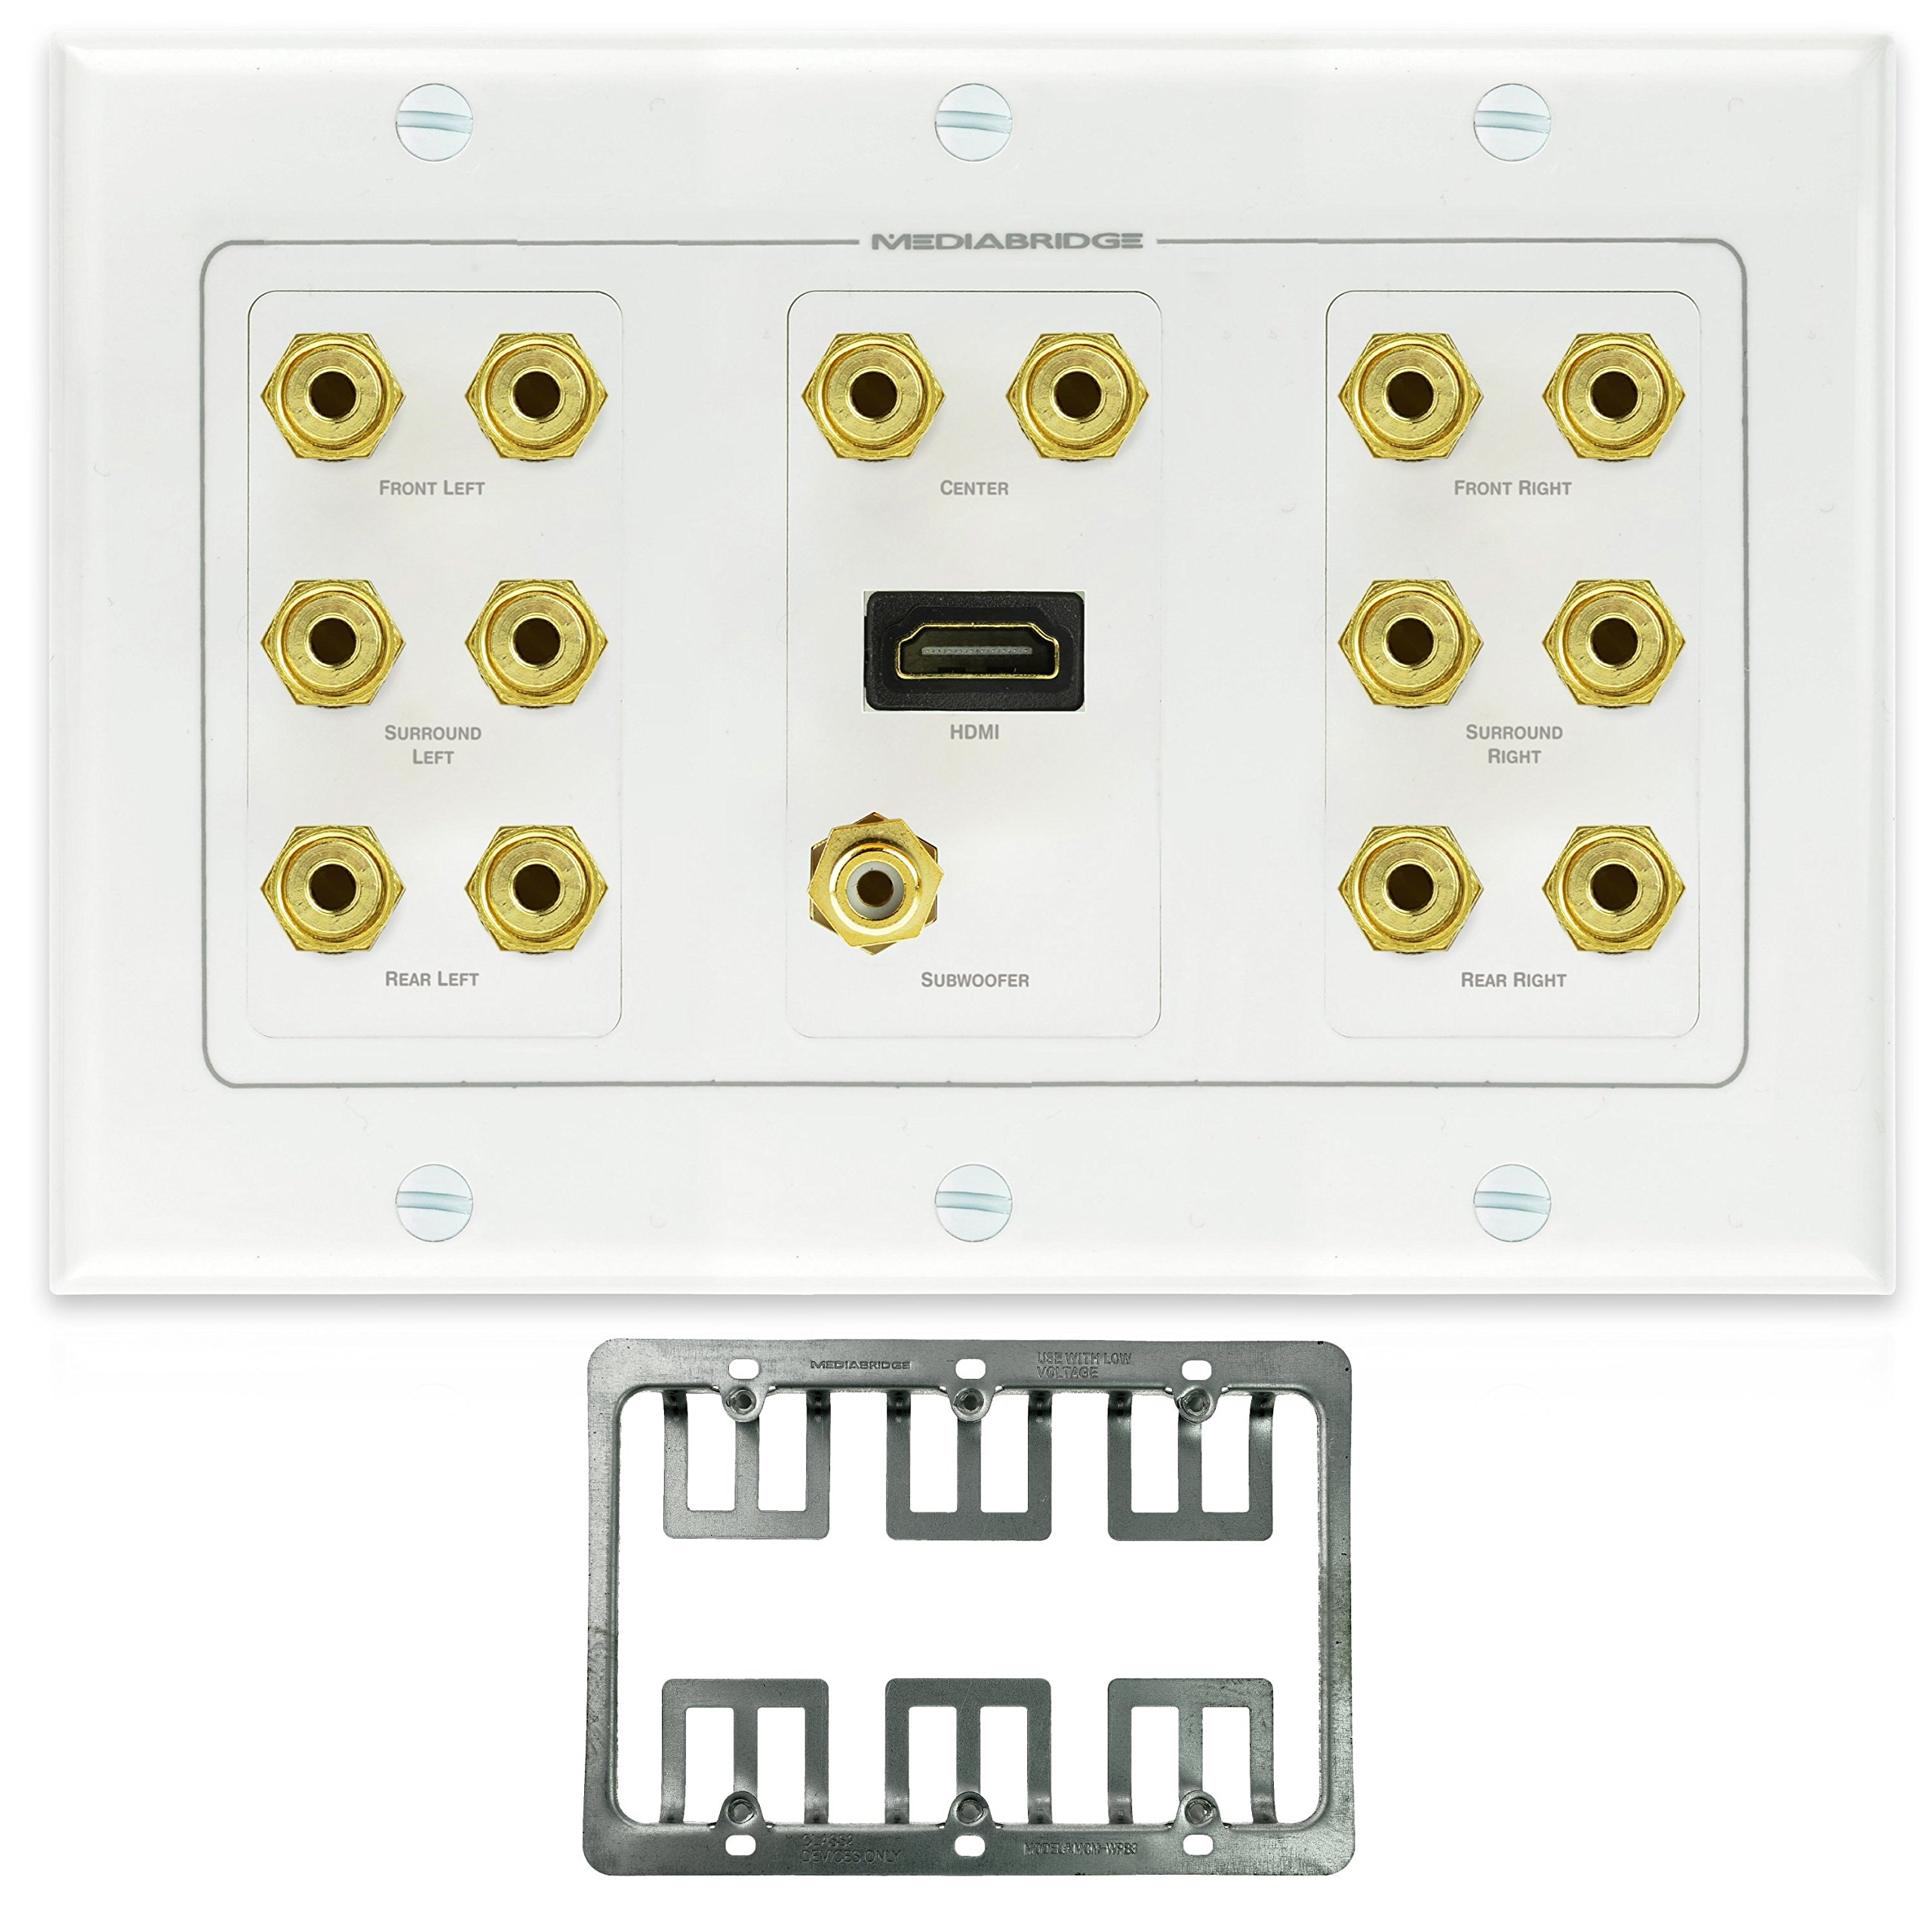 Mediabridge Home Theater Wall Plate w/ Binding Posts (7 Pair), RCA (1 Port) & HDMI (1 Port) - LIMITED TIME OFFER: FREE Mounting Bracket (3-Gang) - 2-Piece Inset Wall Plate (Part# WP3-B7/S1/HDMI1 )